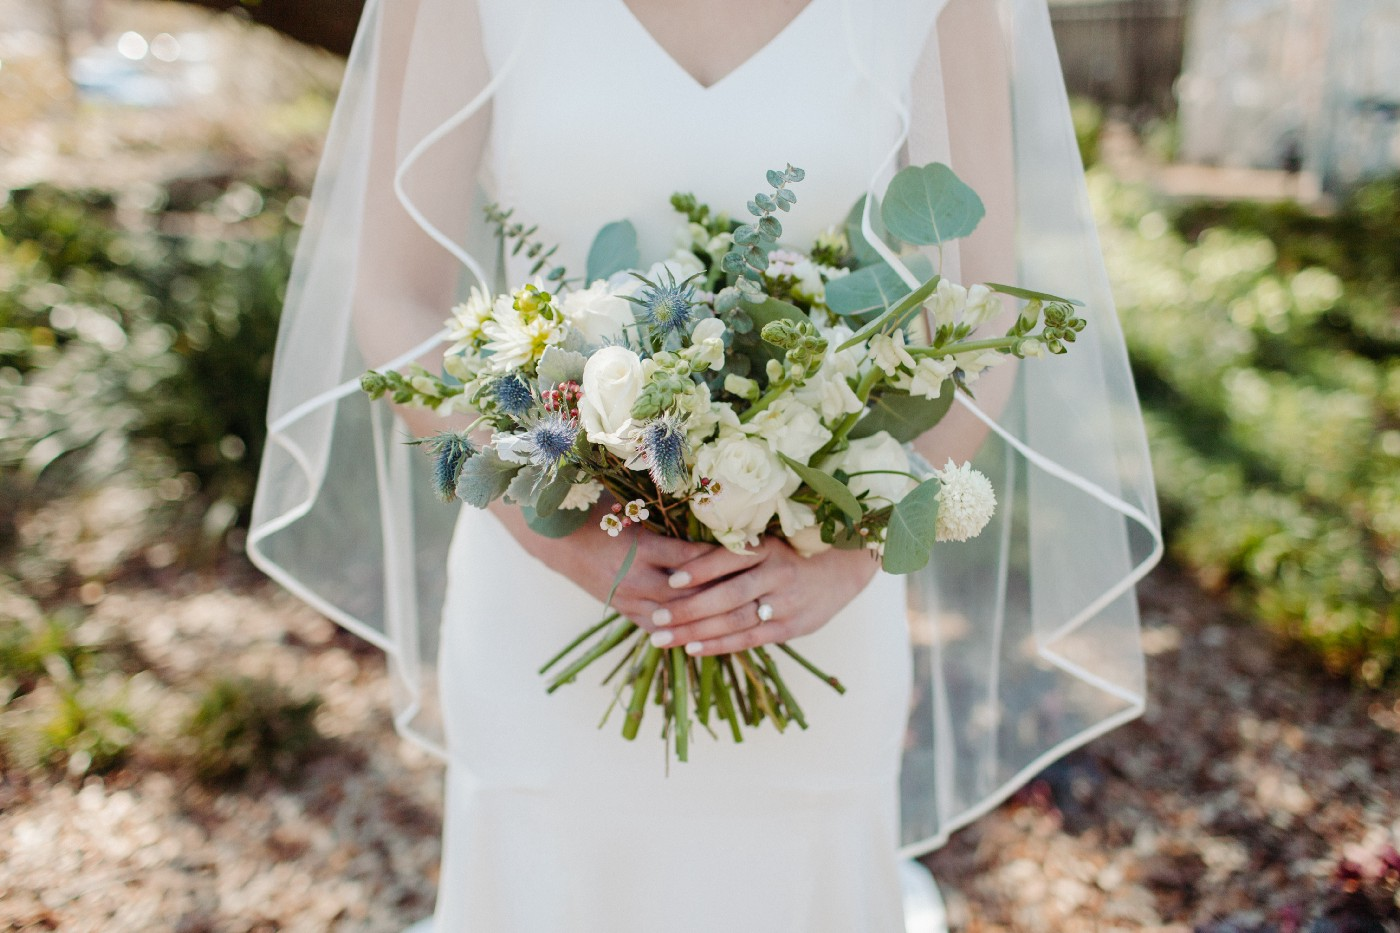 woman in wedding dress holding bouquet of white flowers and eucalyptus